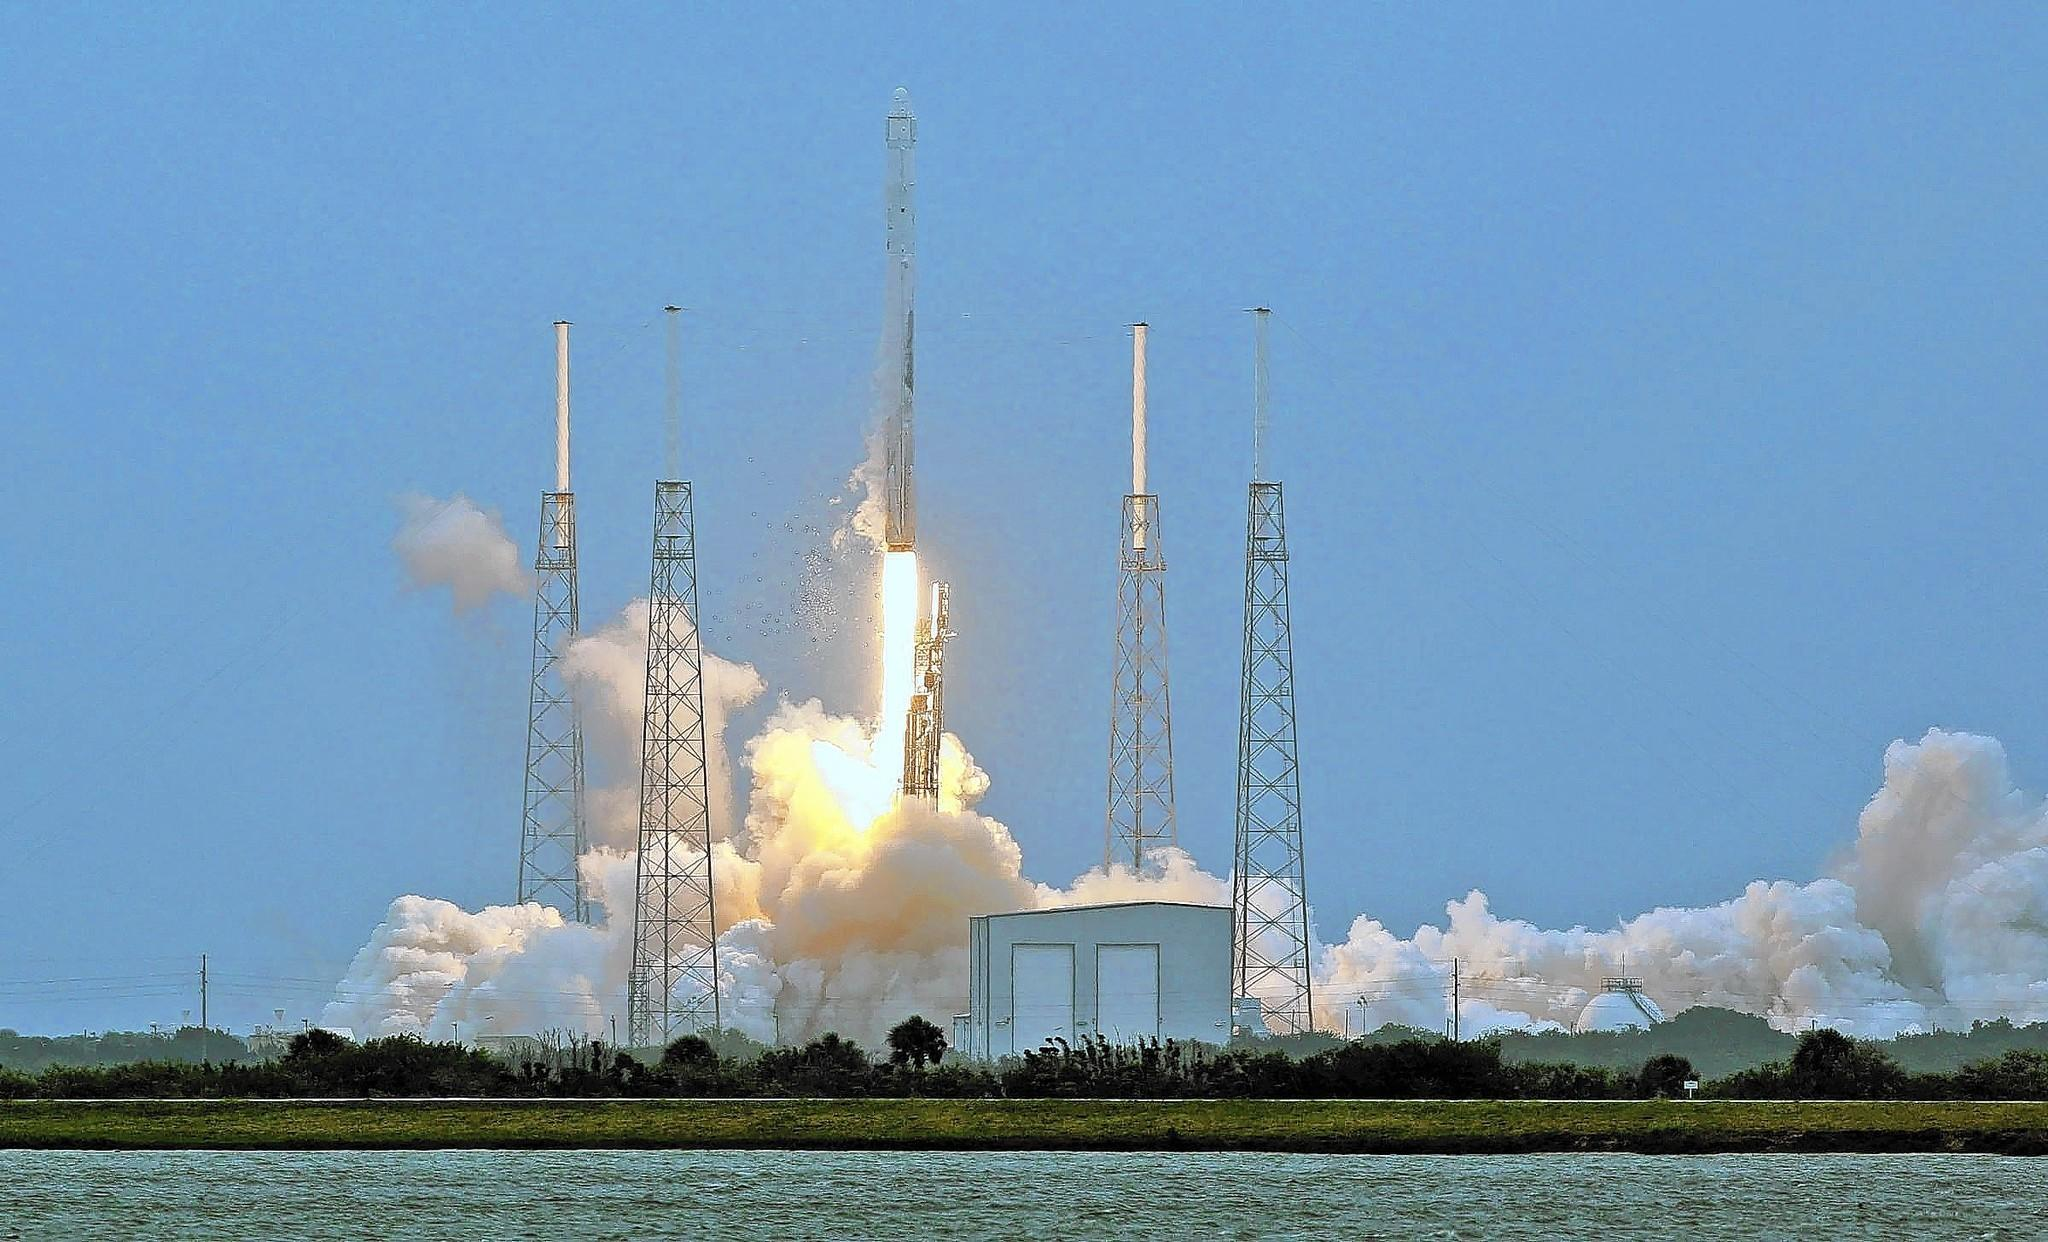 A SpaceX Falcon 9 rocket launches from Cape Canaveral Air Force Station carrying a capsule with 5,000 pounds of supplies. The Dragon capsule is scheduled to rendezvous with the space station Sunday.